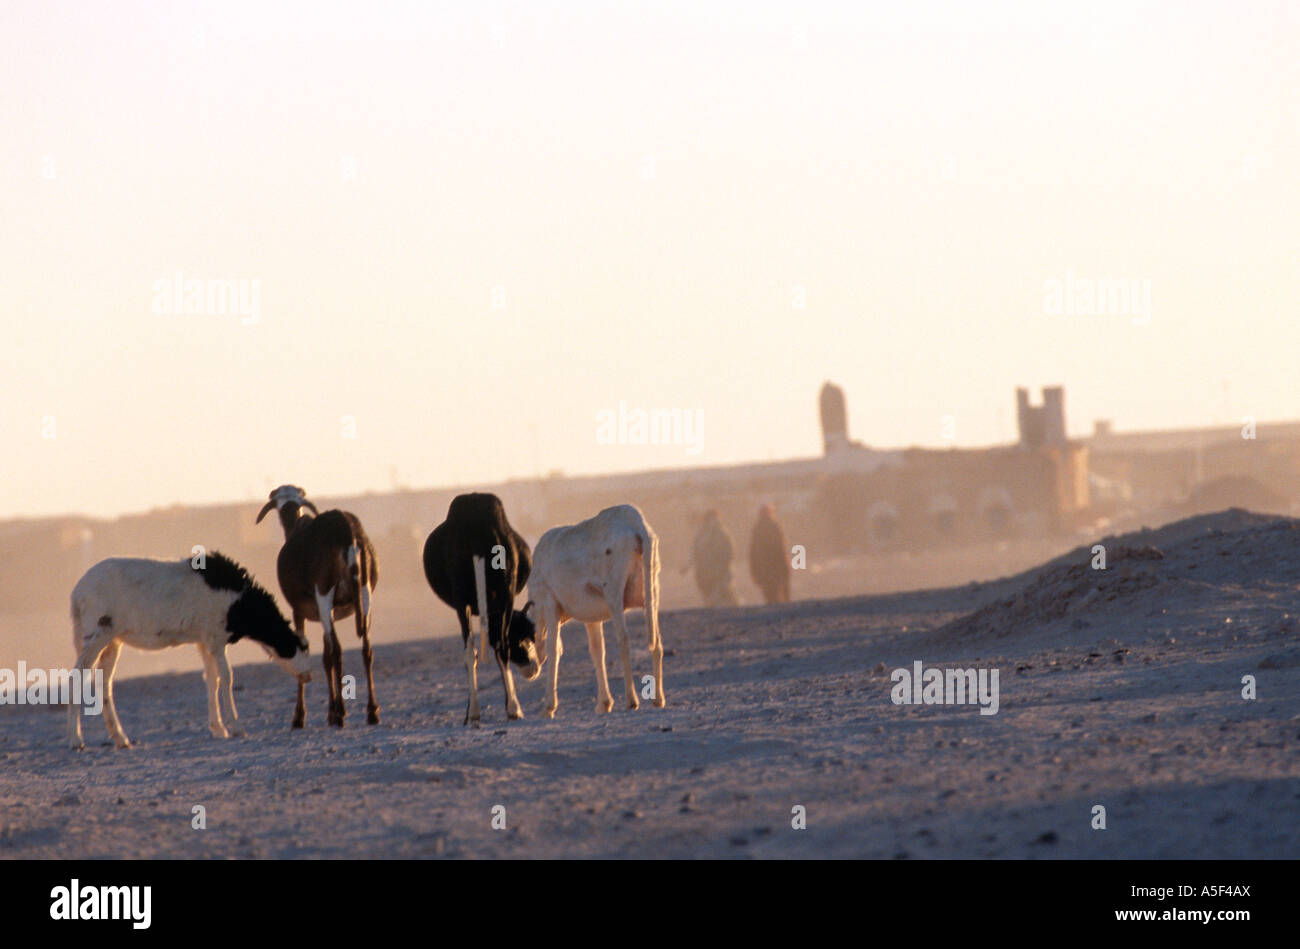 Goat farming in Saharawi refugee camp in Tindouf Western Algeria - Stock Image